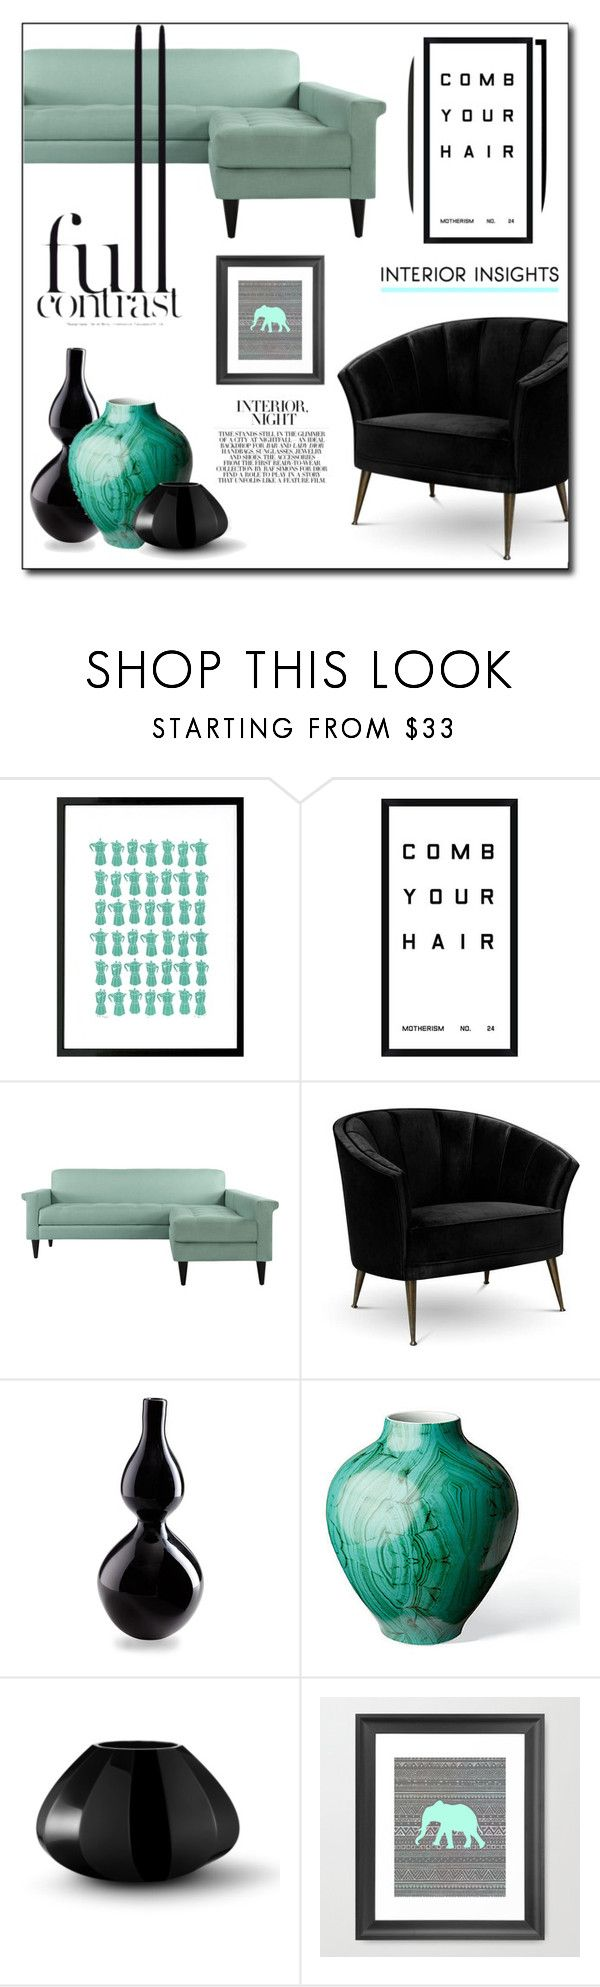 """Black & Mint"" by gracecar3 ❤ liked on Polyvore featuring interior, interiors, interior design, home, home decor, interior decorating, Lu West, Pottery Barn, Arca and Cyan Design"